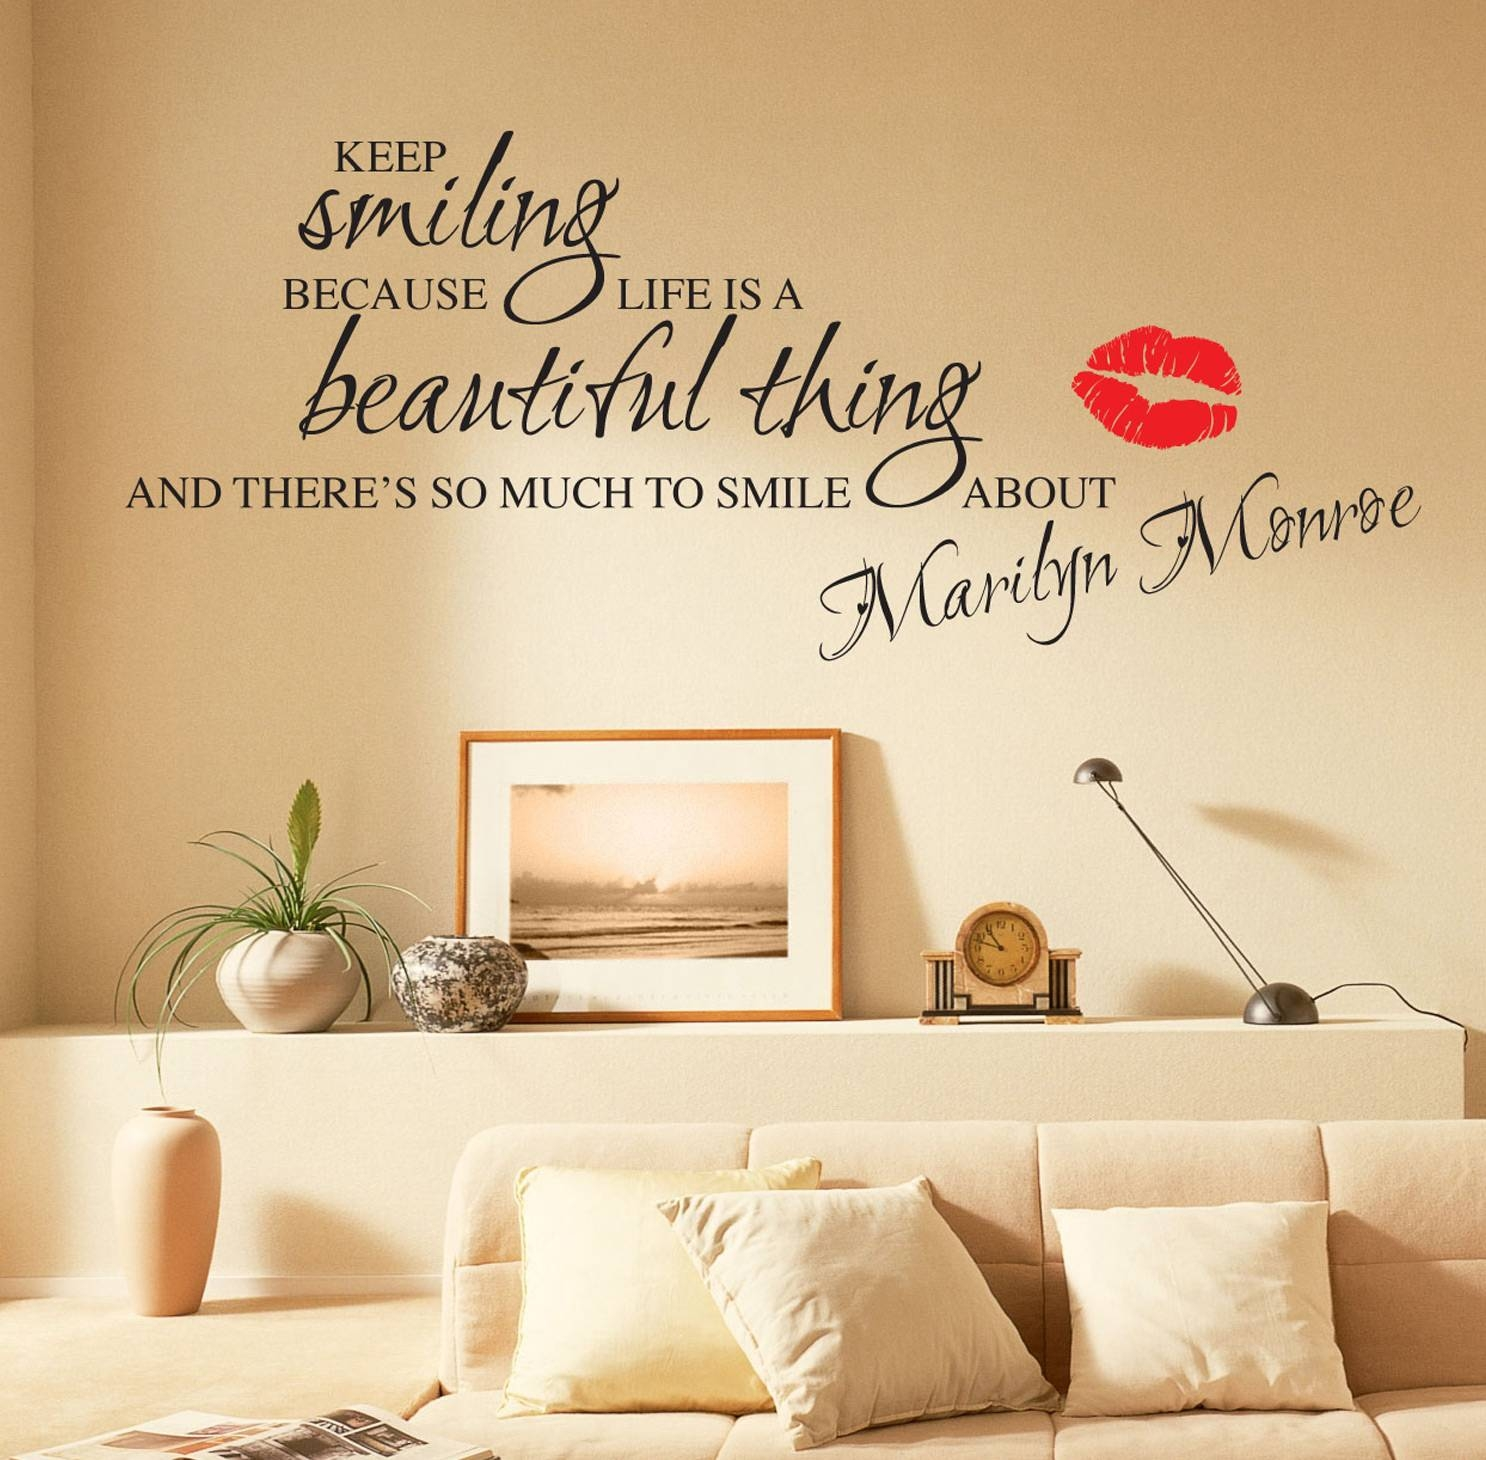 Marilyn Monroe Wall Stickers Quotes Art Decals W55 | Ebay For Most Current Marilyn Monroe Wall Art (View 12 of 25)